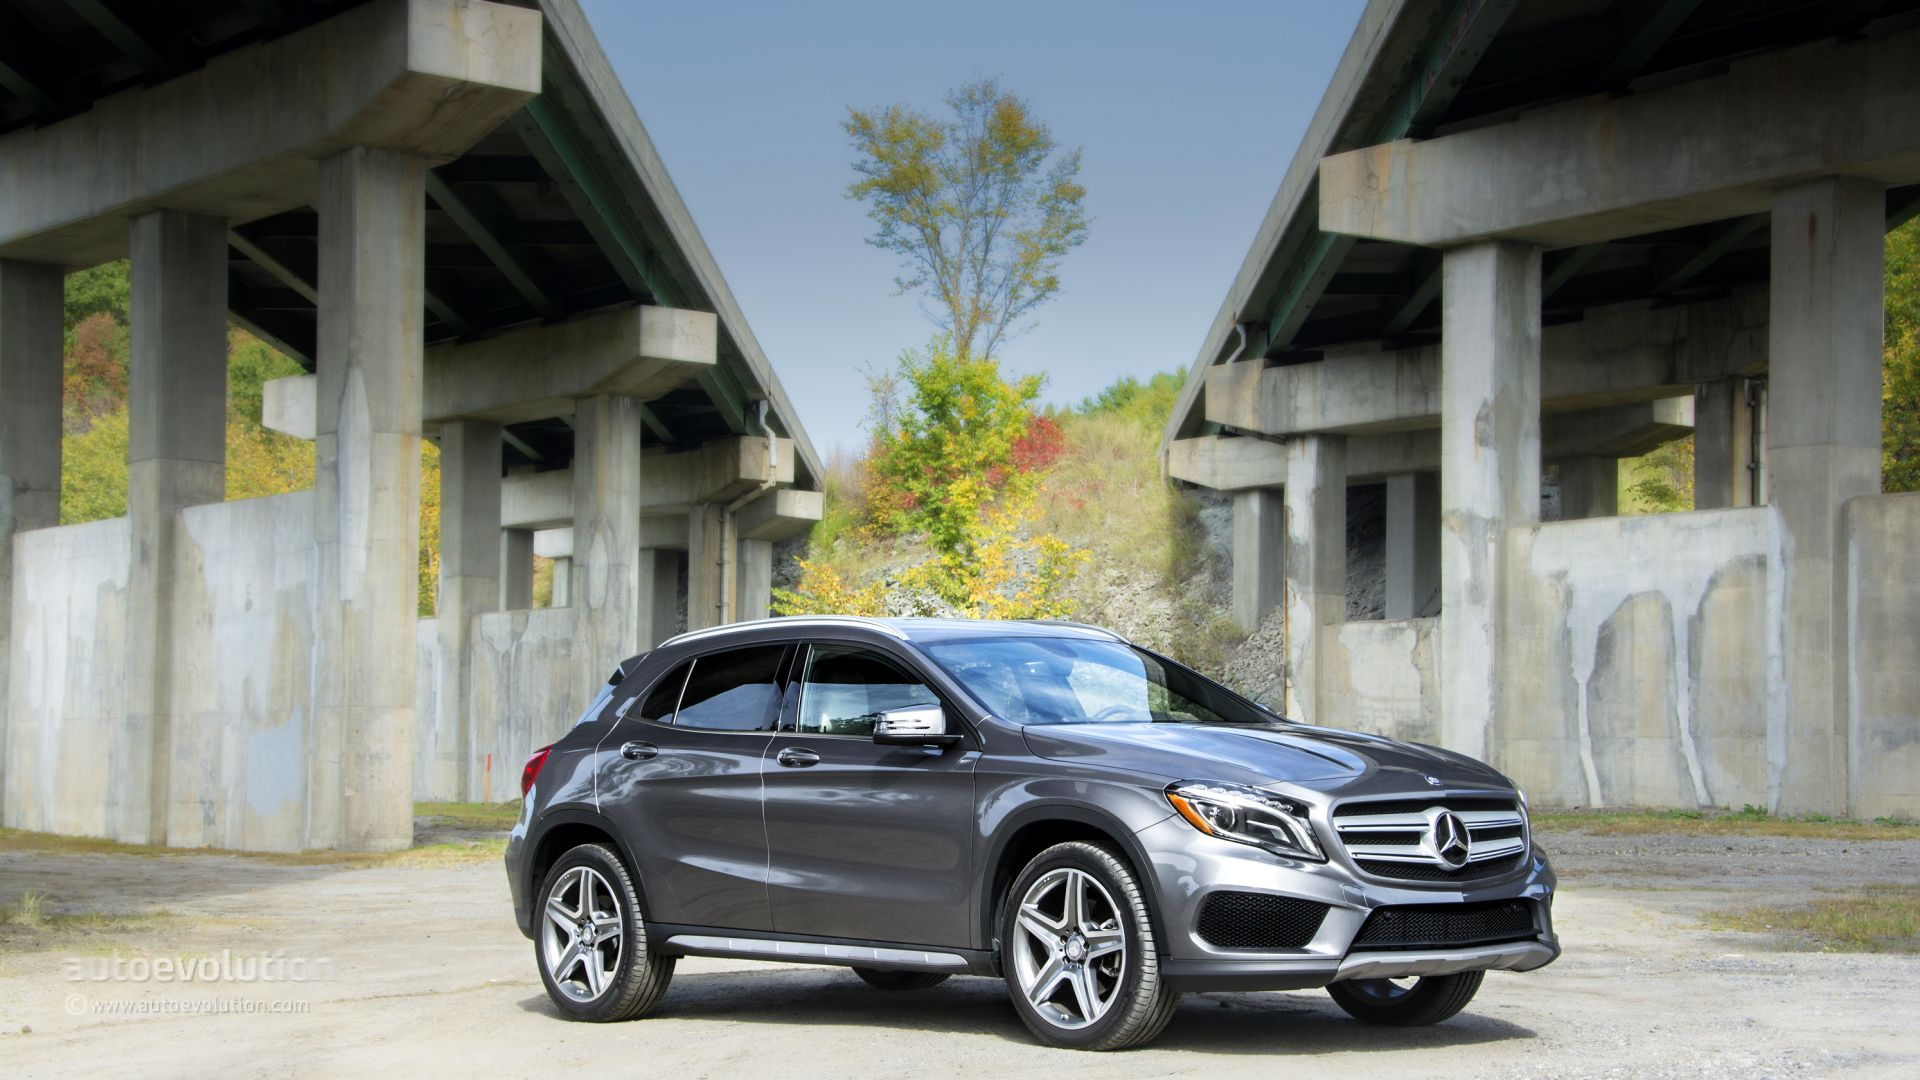 2015 Mercedes Benz Gla250 4matic Gla45 Amg Review Mercedes Benz